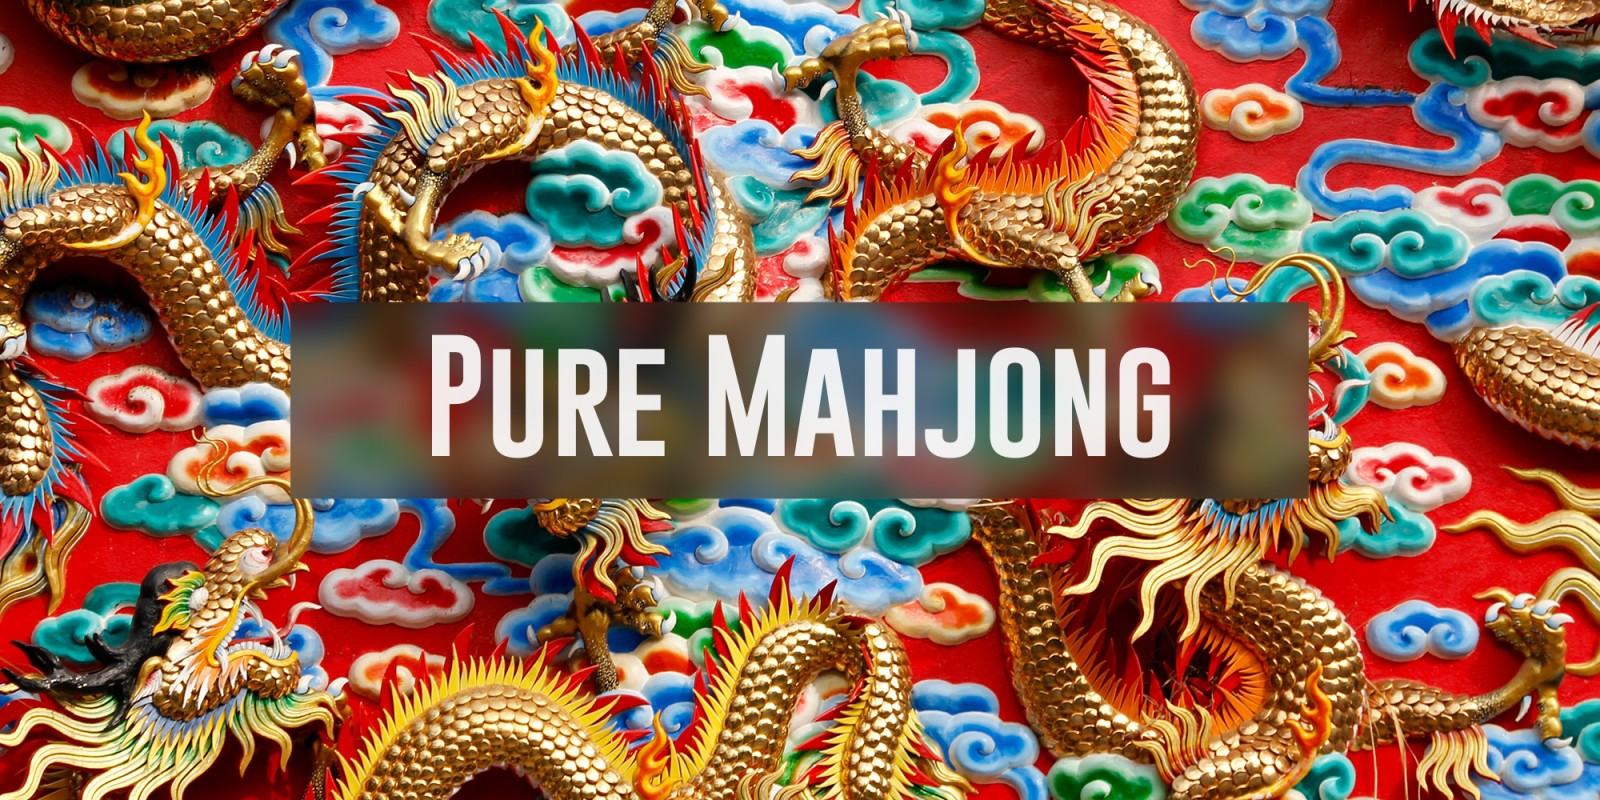 Pure Mahjong - Nintendo Switch download software - Games ...